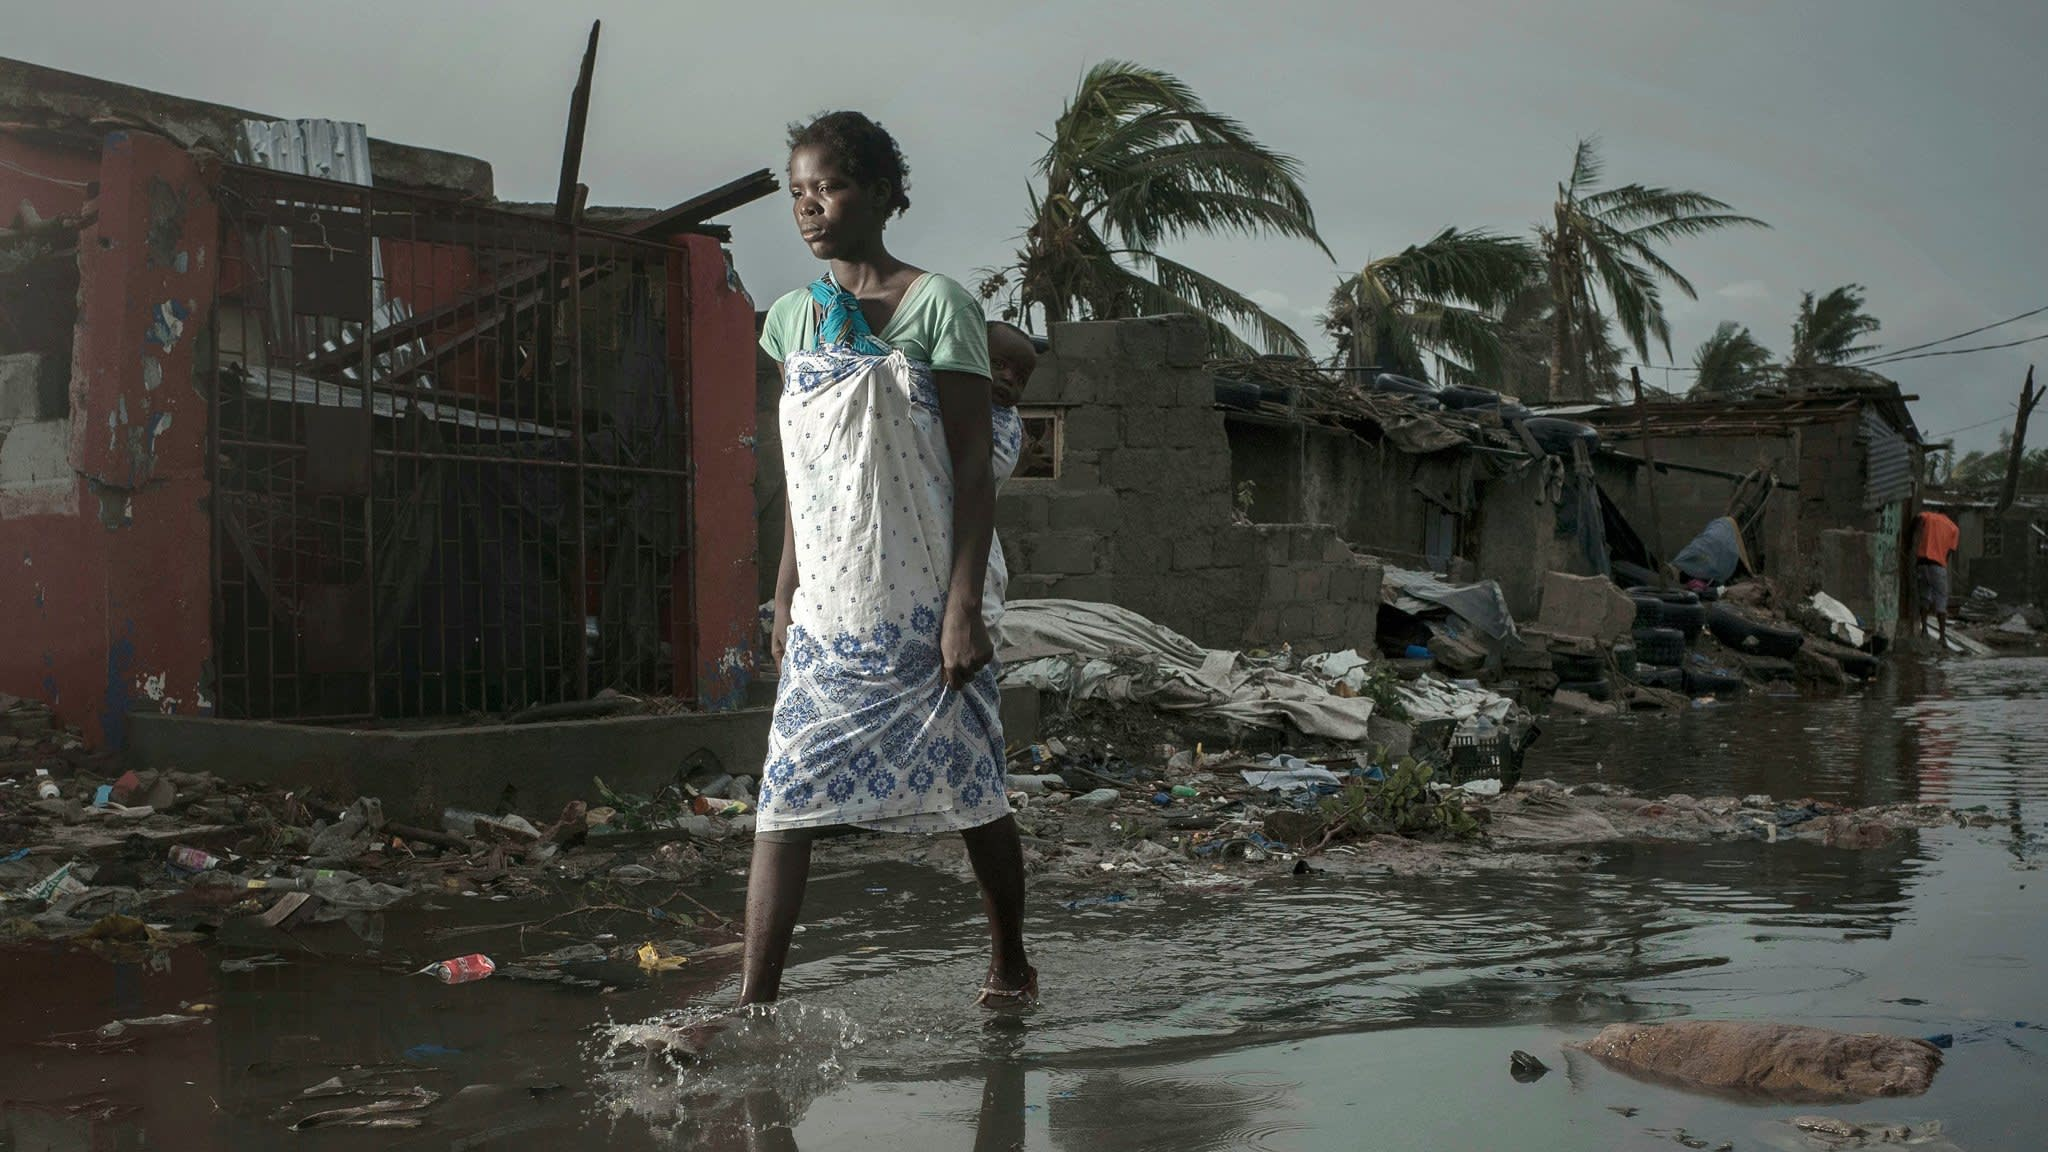 More than 1,000 feared dead after Cyclone Idai batters Mozambique